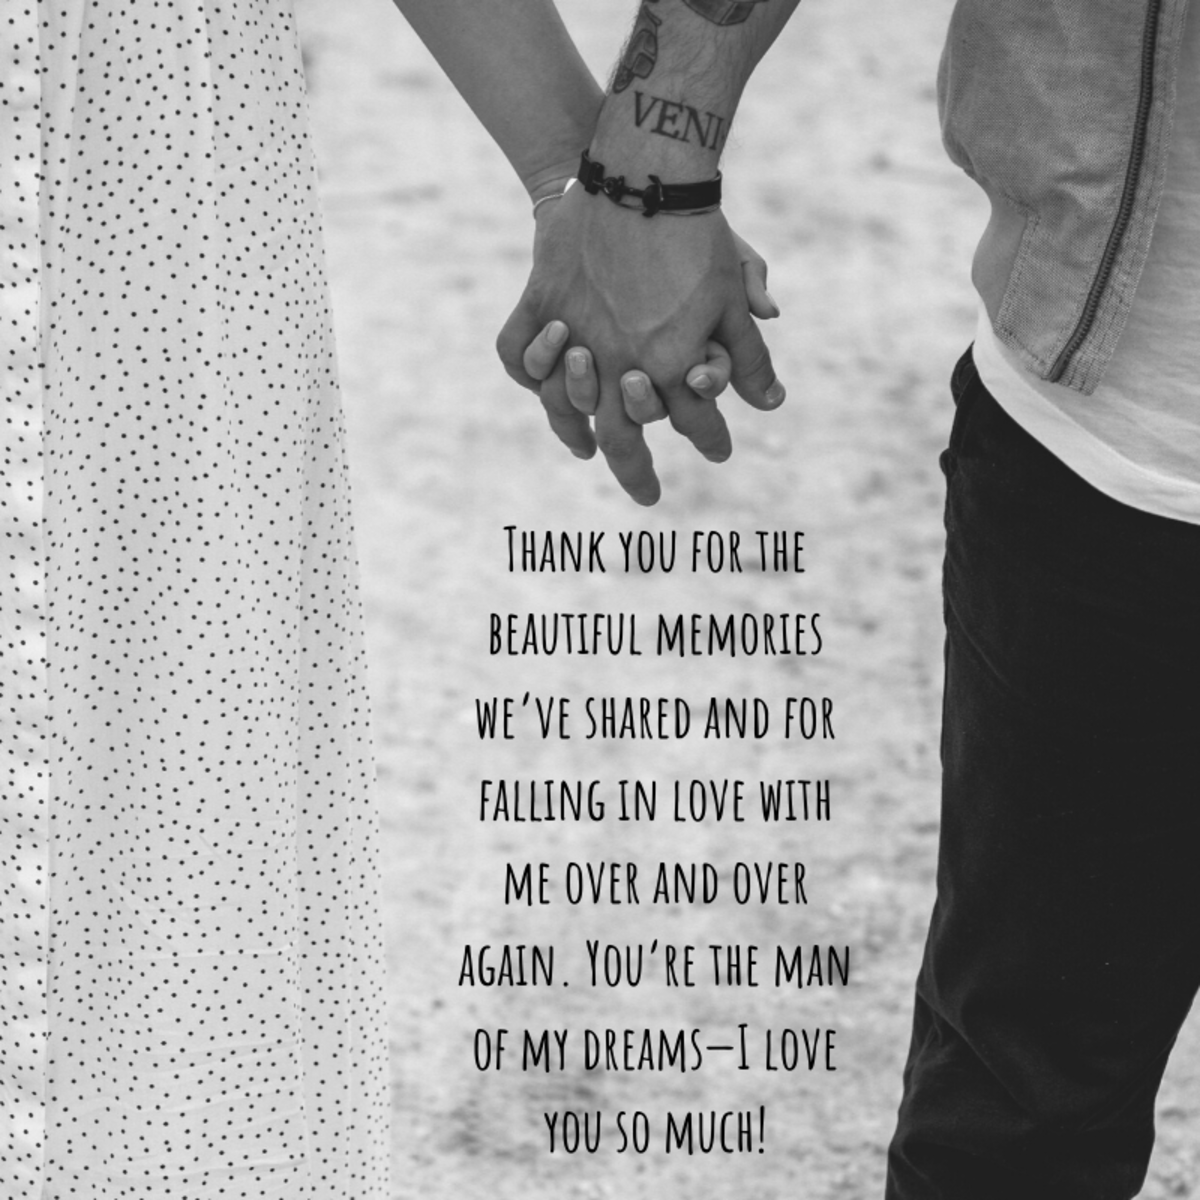 An anniversary card is an opportunity to let your husband know how important he is to you.